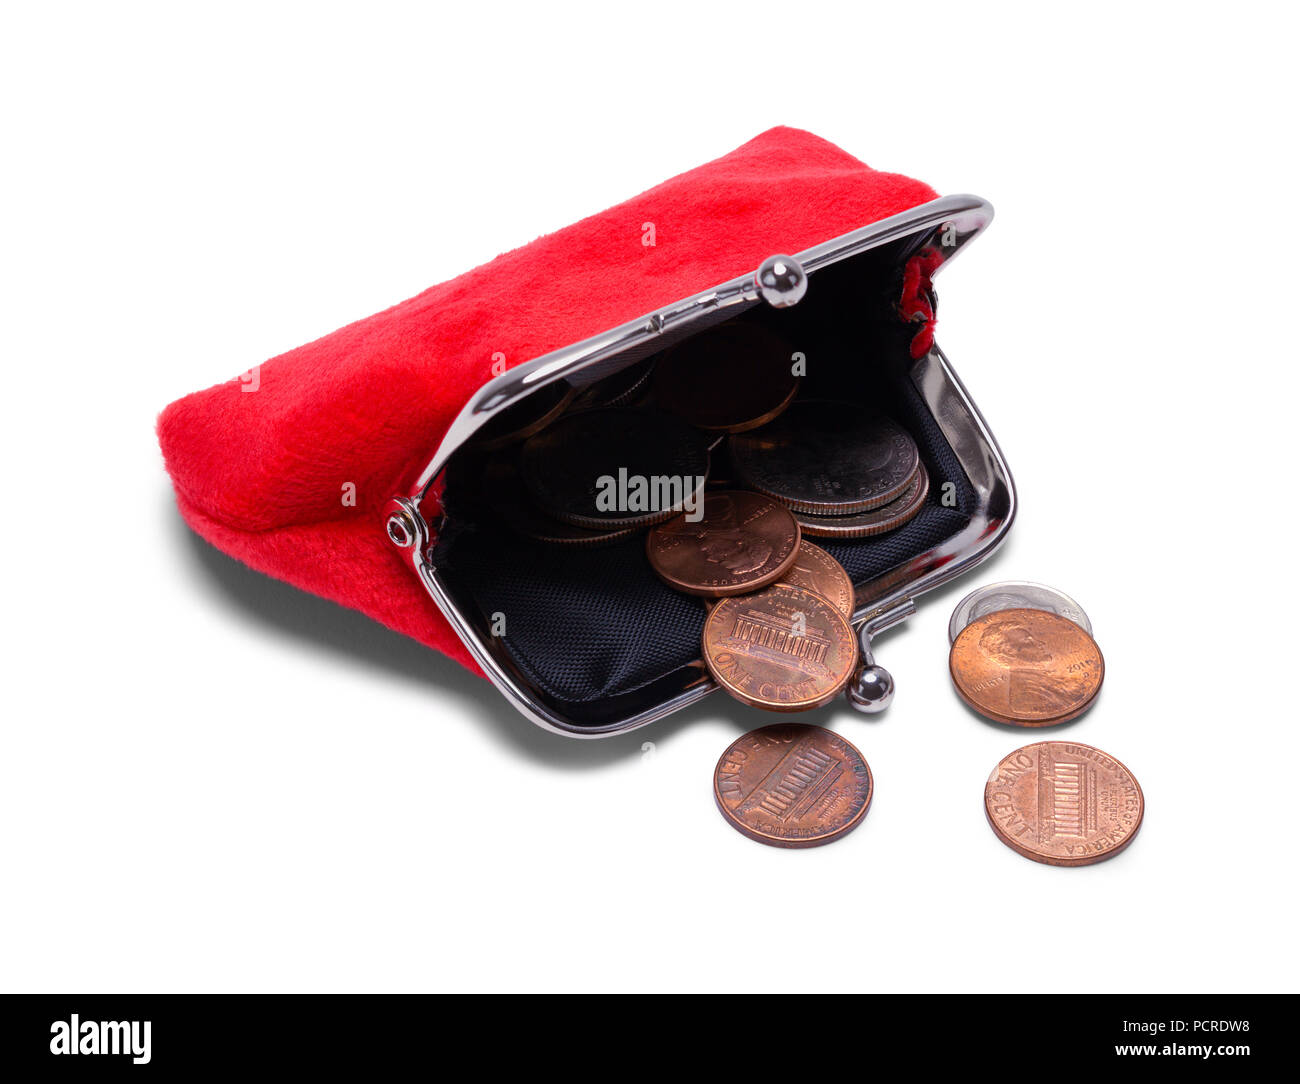 Open Coin Purse With Change Spilling Out Isolated on White. - Stock Image